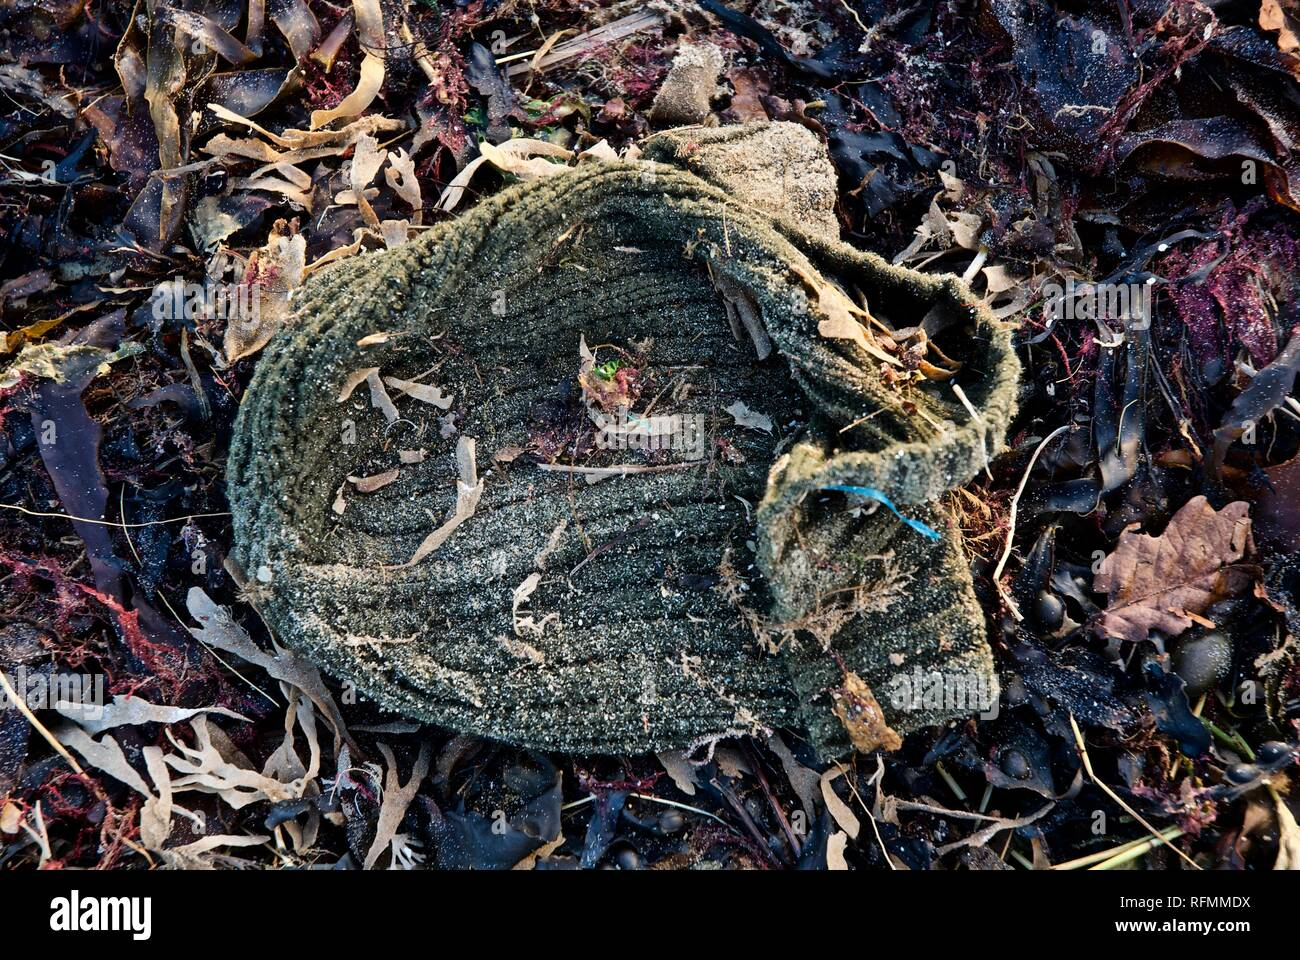 A discarded hat, sea waste washed up on a beach in Rhosneigr, Anglesey, North Wales, UK - Stock Image